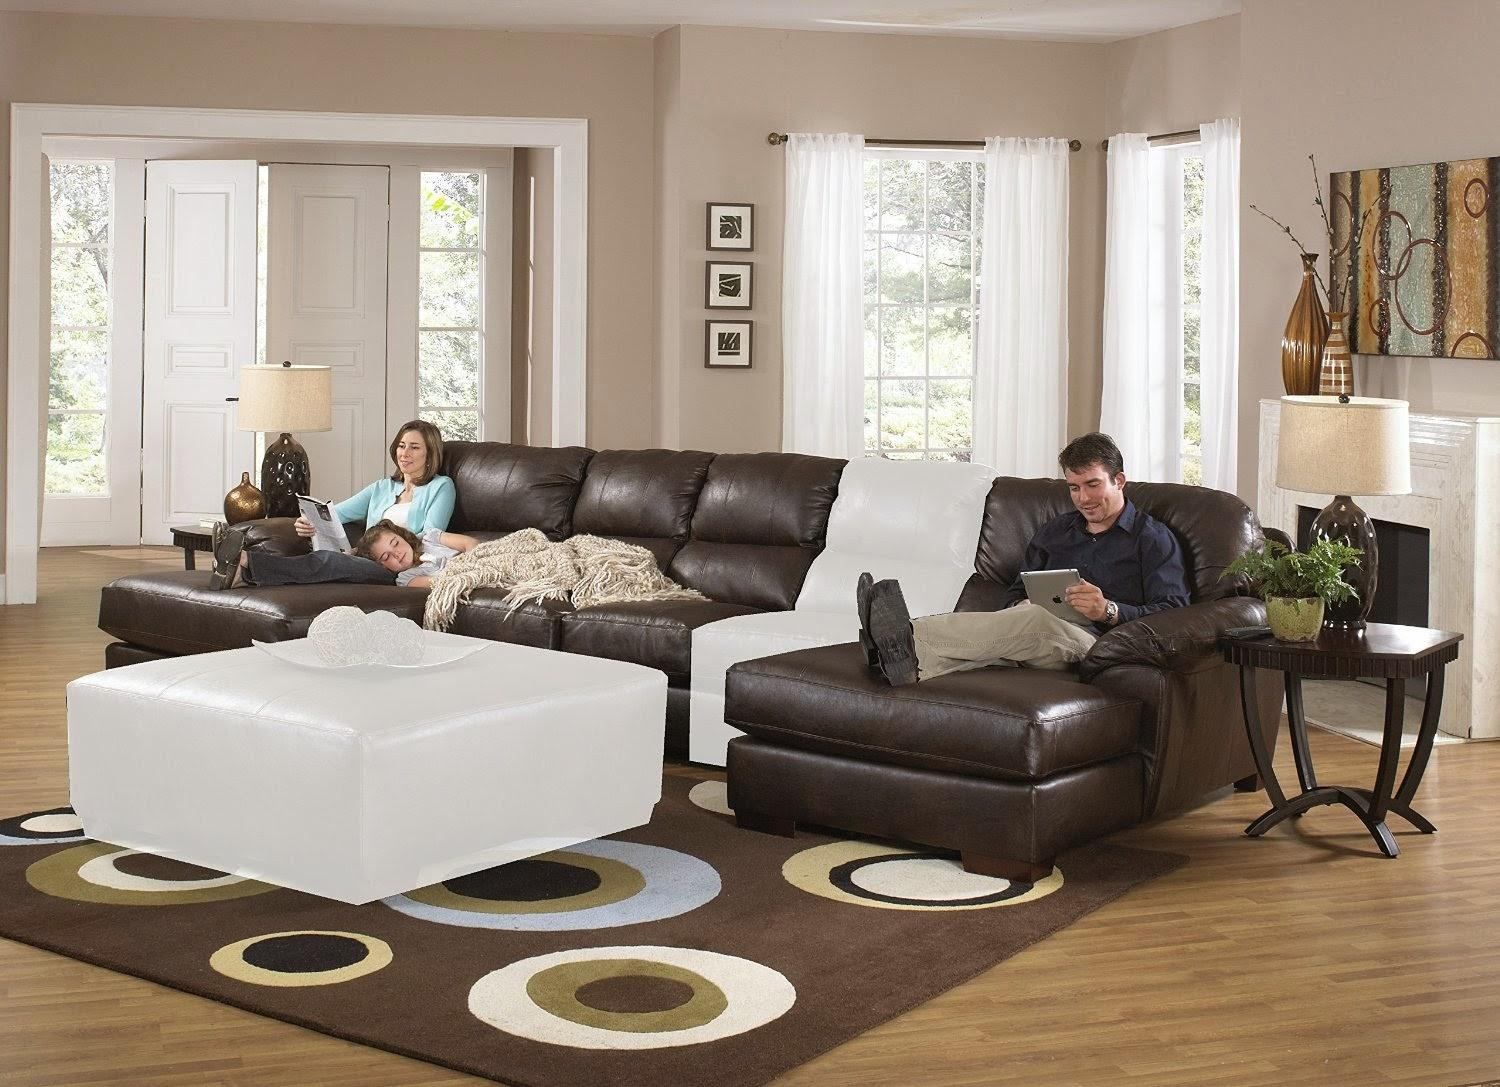 Furniture: Fantastic Sectional Couches With Recliners For Your Inside Sleeper Recliner Sectional (Image 5 of 20)